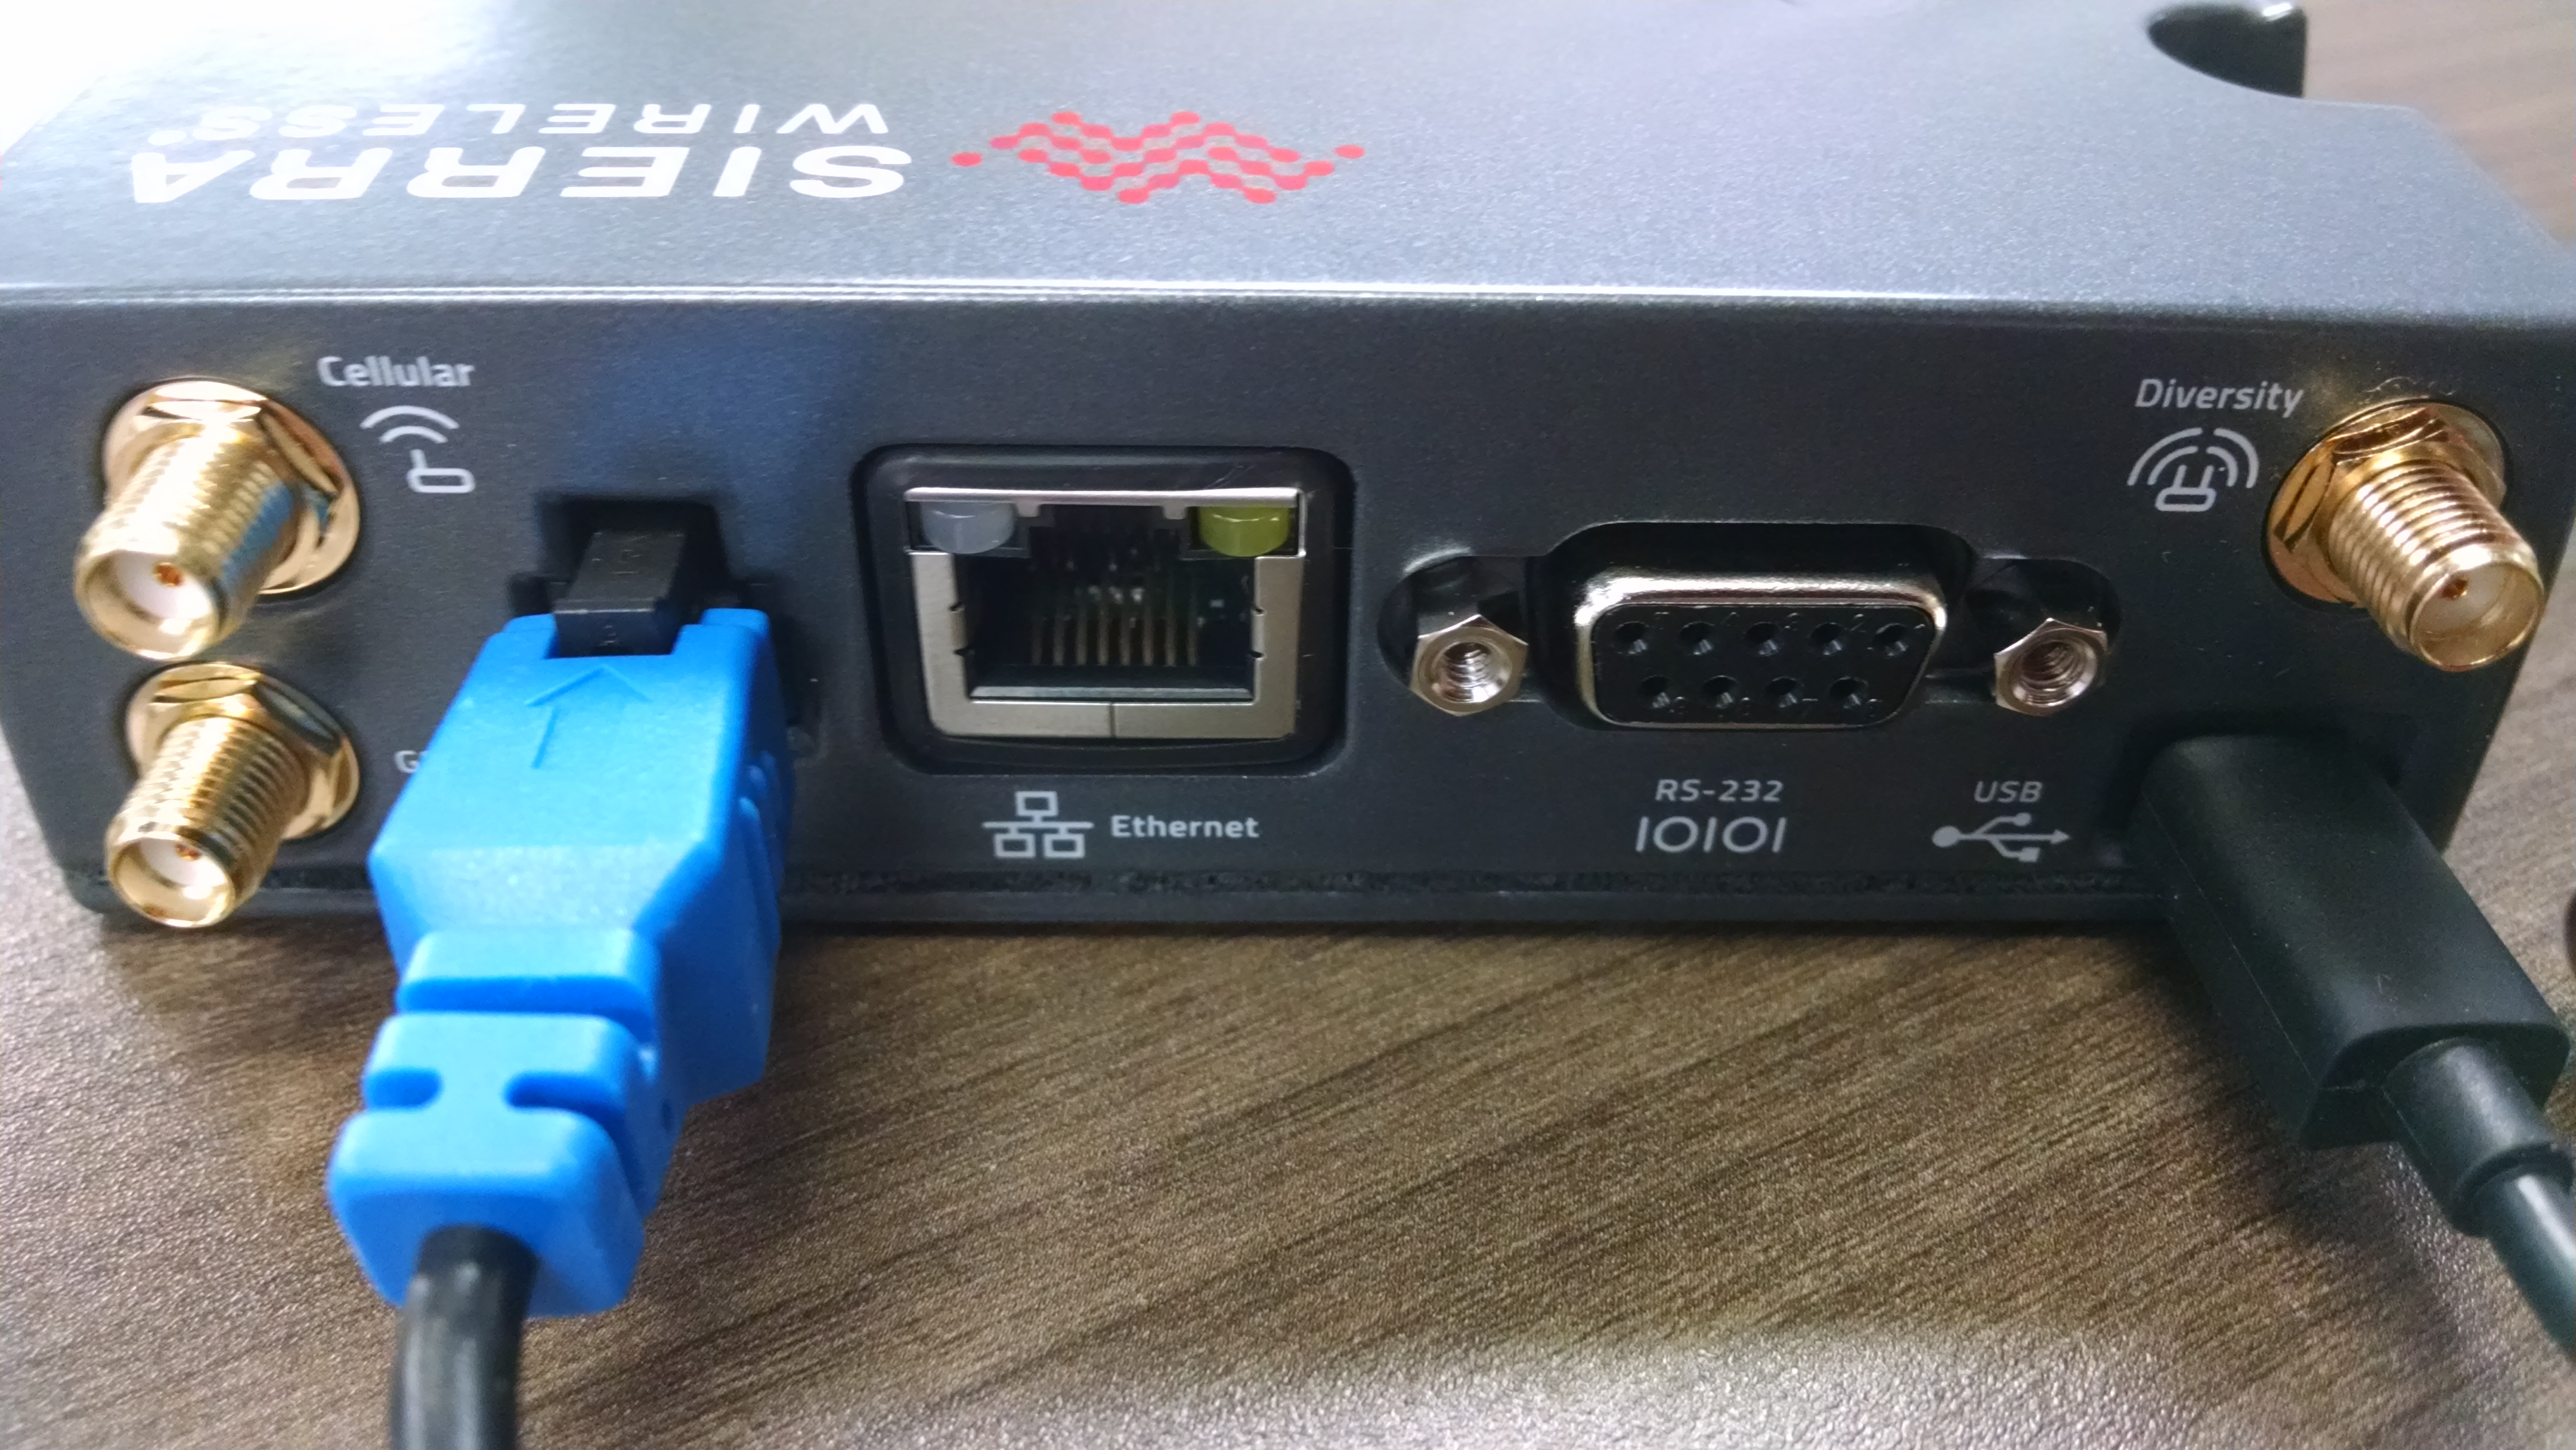 Change Settings On A Rv50 Modem Using Acemanager Nexsens Rs232 Wiring Micro Usb Connection